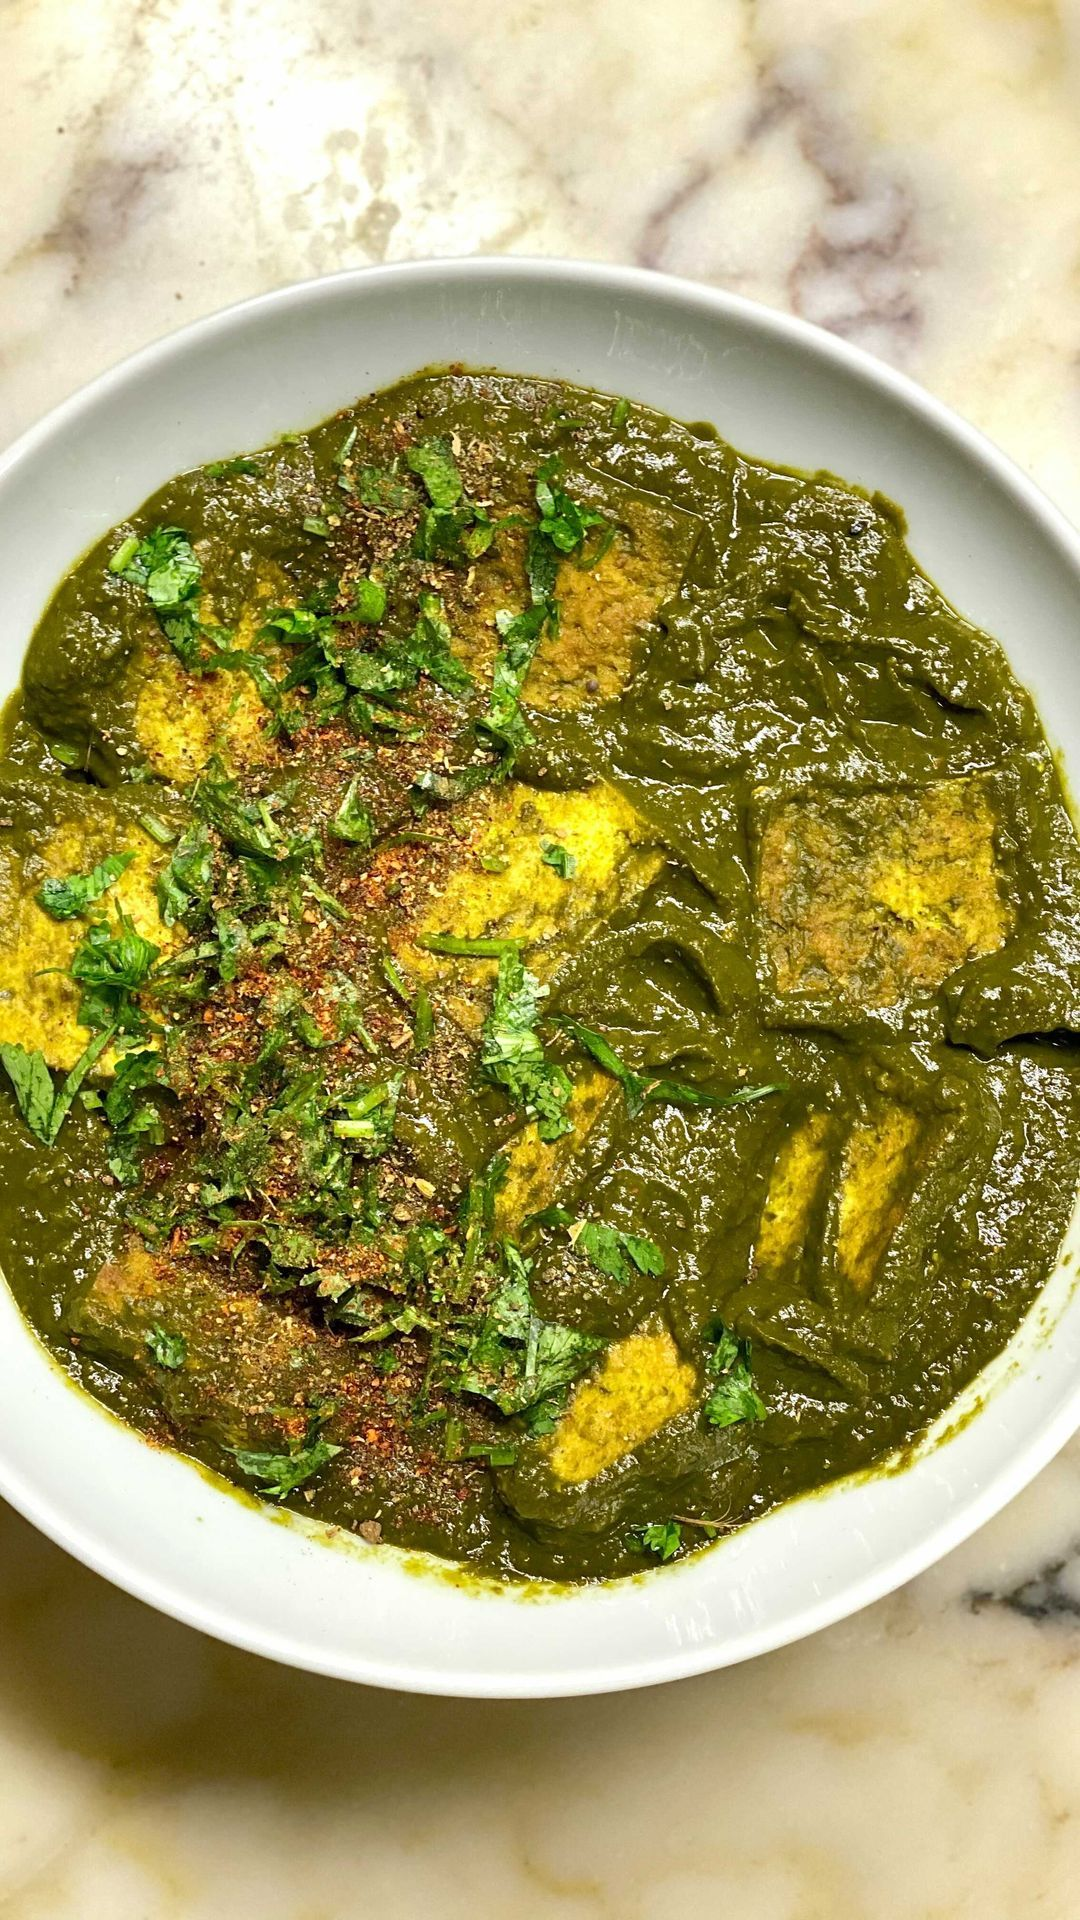 Chiefspicemama On Instagram Saag Paneer Minus The Paneer You Honestly Won T Even Miss The Dairy Plus This Dish Is Saag Paneer Vegeterian Recipes Saag